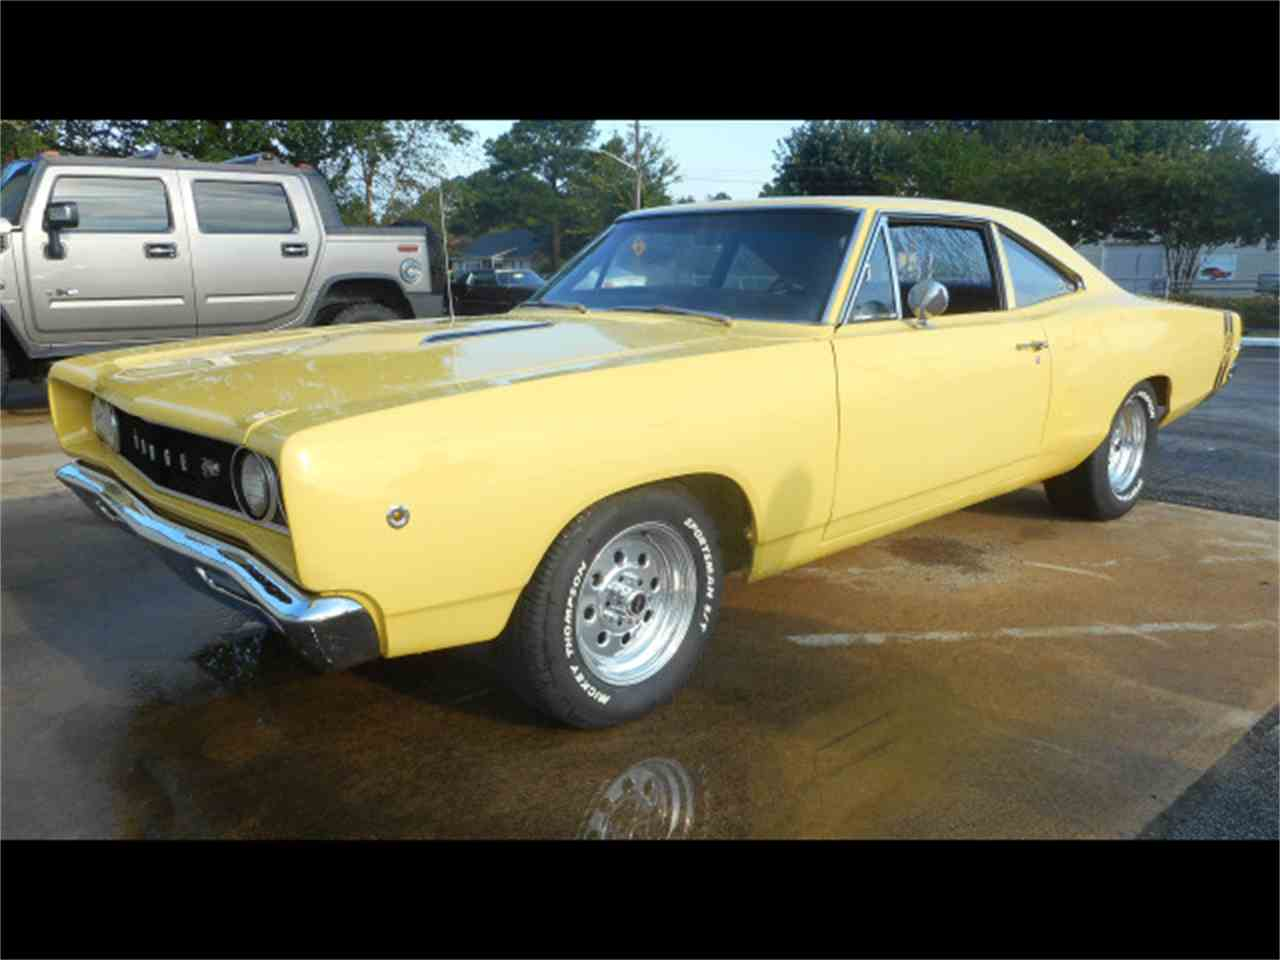 Large Picture of 1968 Dodge Super Bee located in North Carolina Offered by Classic Connections - LU9I